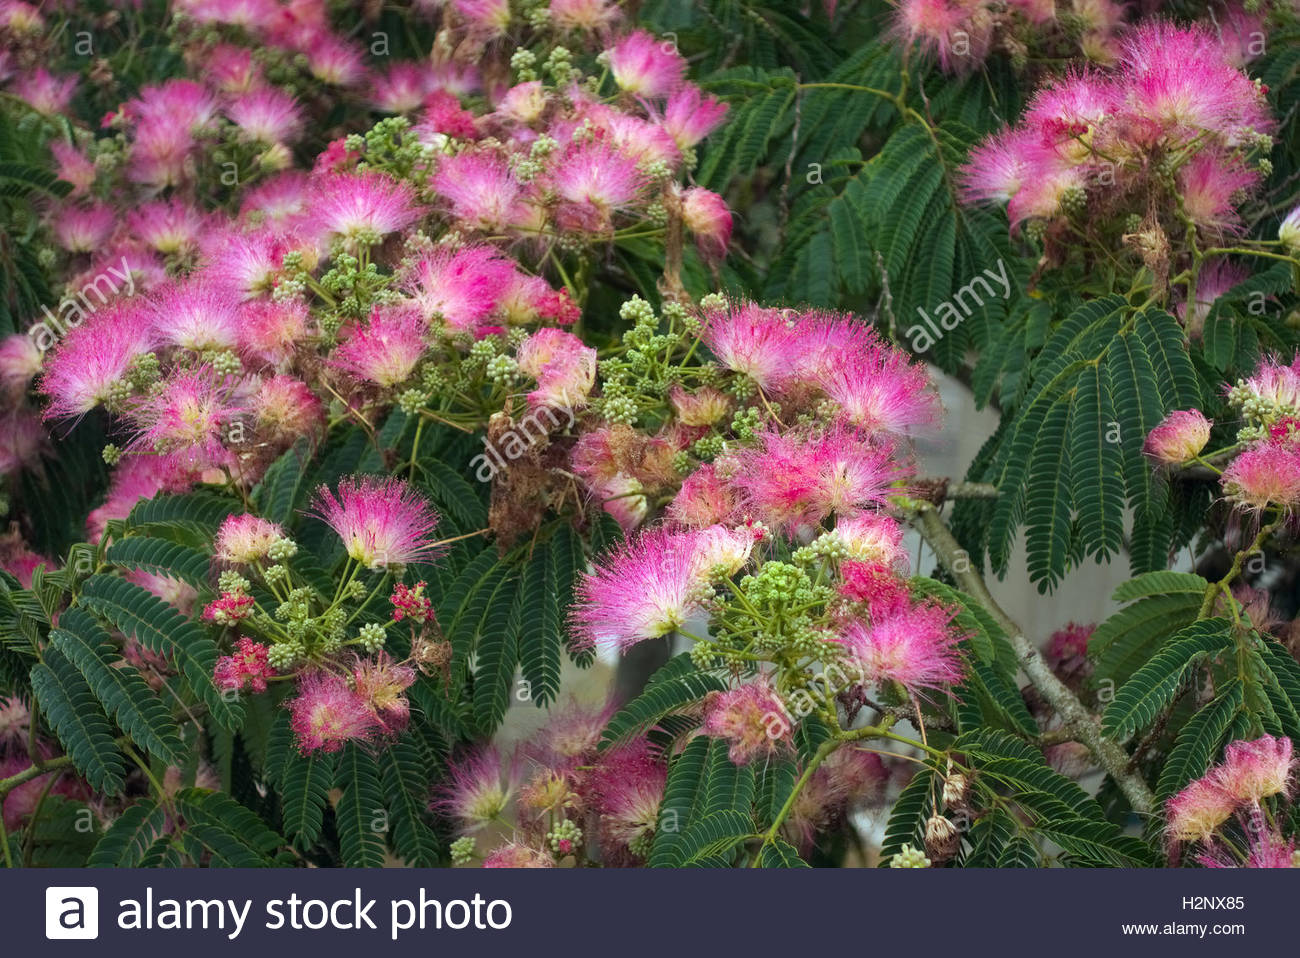 albizia julibrissin f rosea pink silk tree stock photo. Black Bedroom Furniture Sets. Home Design Ideas